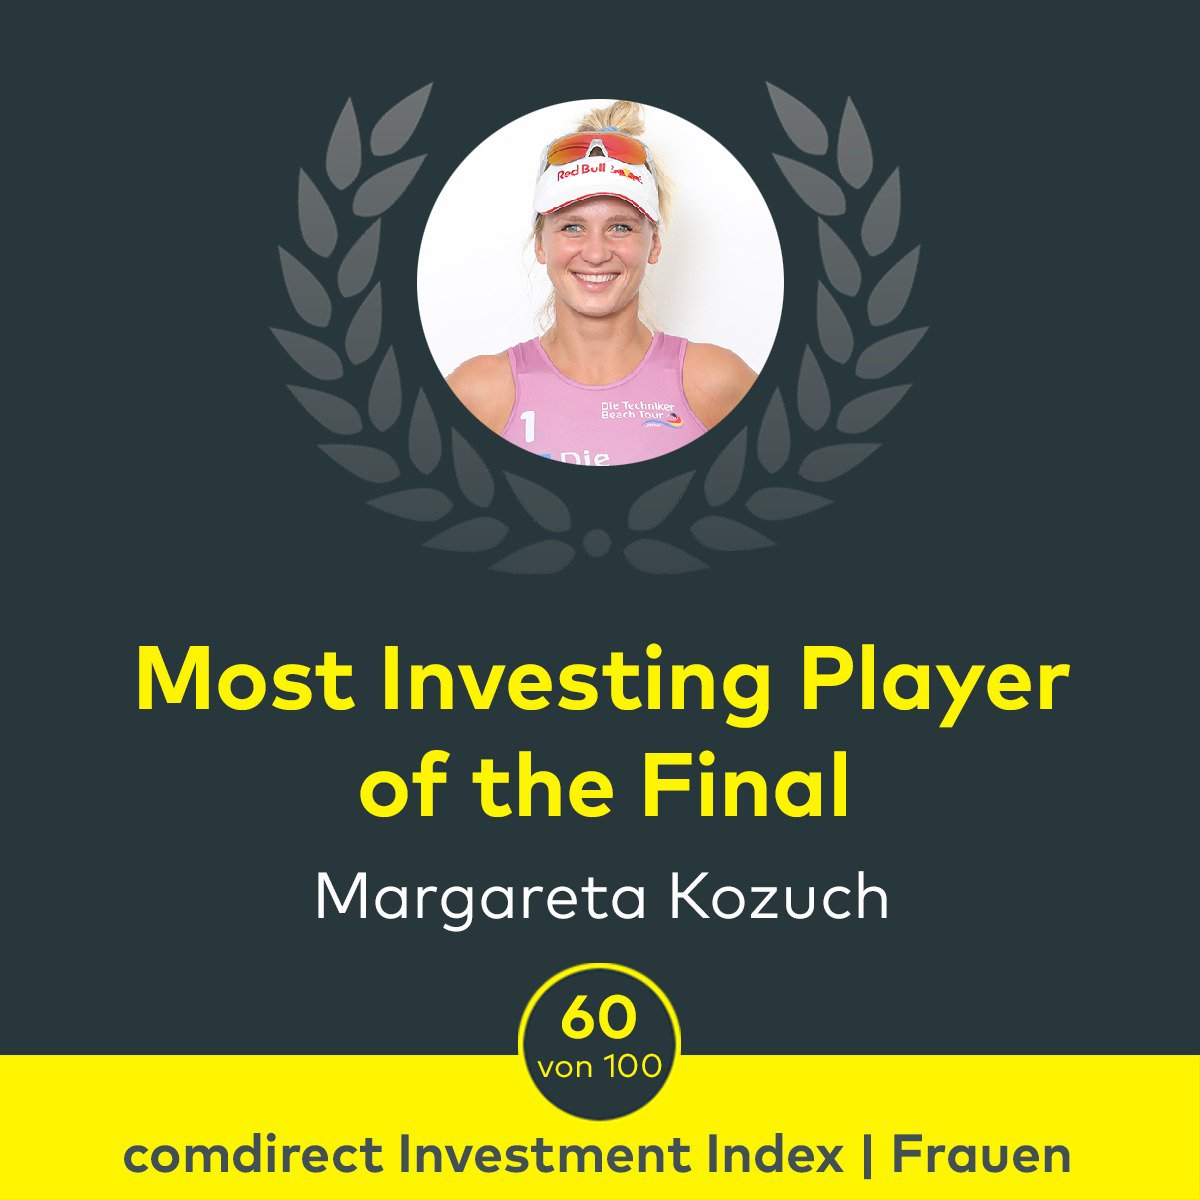 "Super Leistung @maggiekozuch! Gratulation zum Titel ""Most Investing Player of the Final und zum 🥇 bei der #TBTDresden. /CK @Borger_Kozuch #TechnikerBeachTour #beachvolleyball #beachvolleybank #volleyballneudenken https://t.co/ur7FjL5uDP"